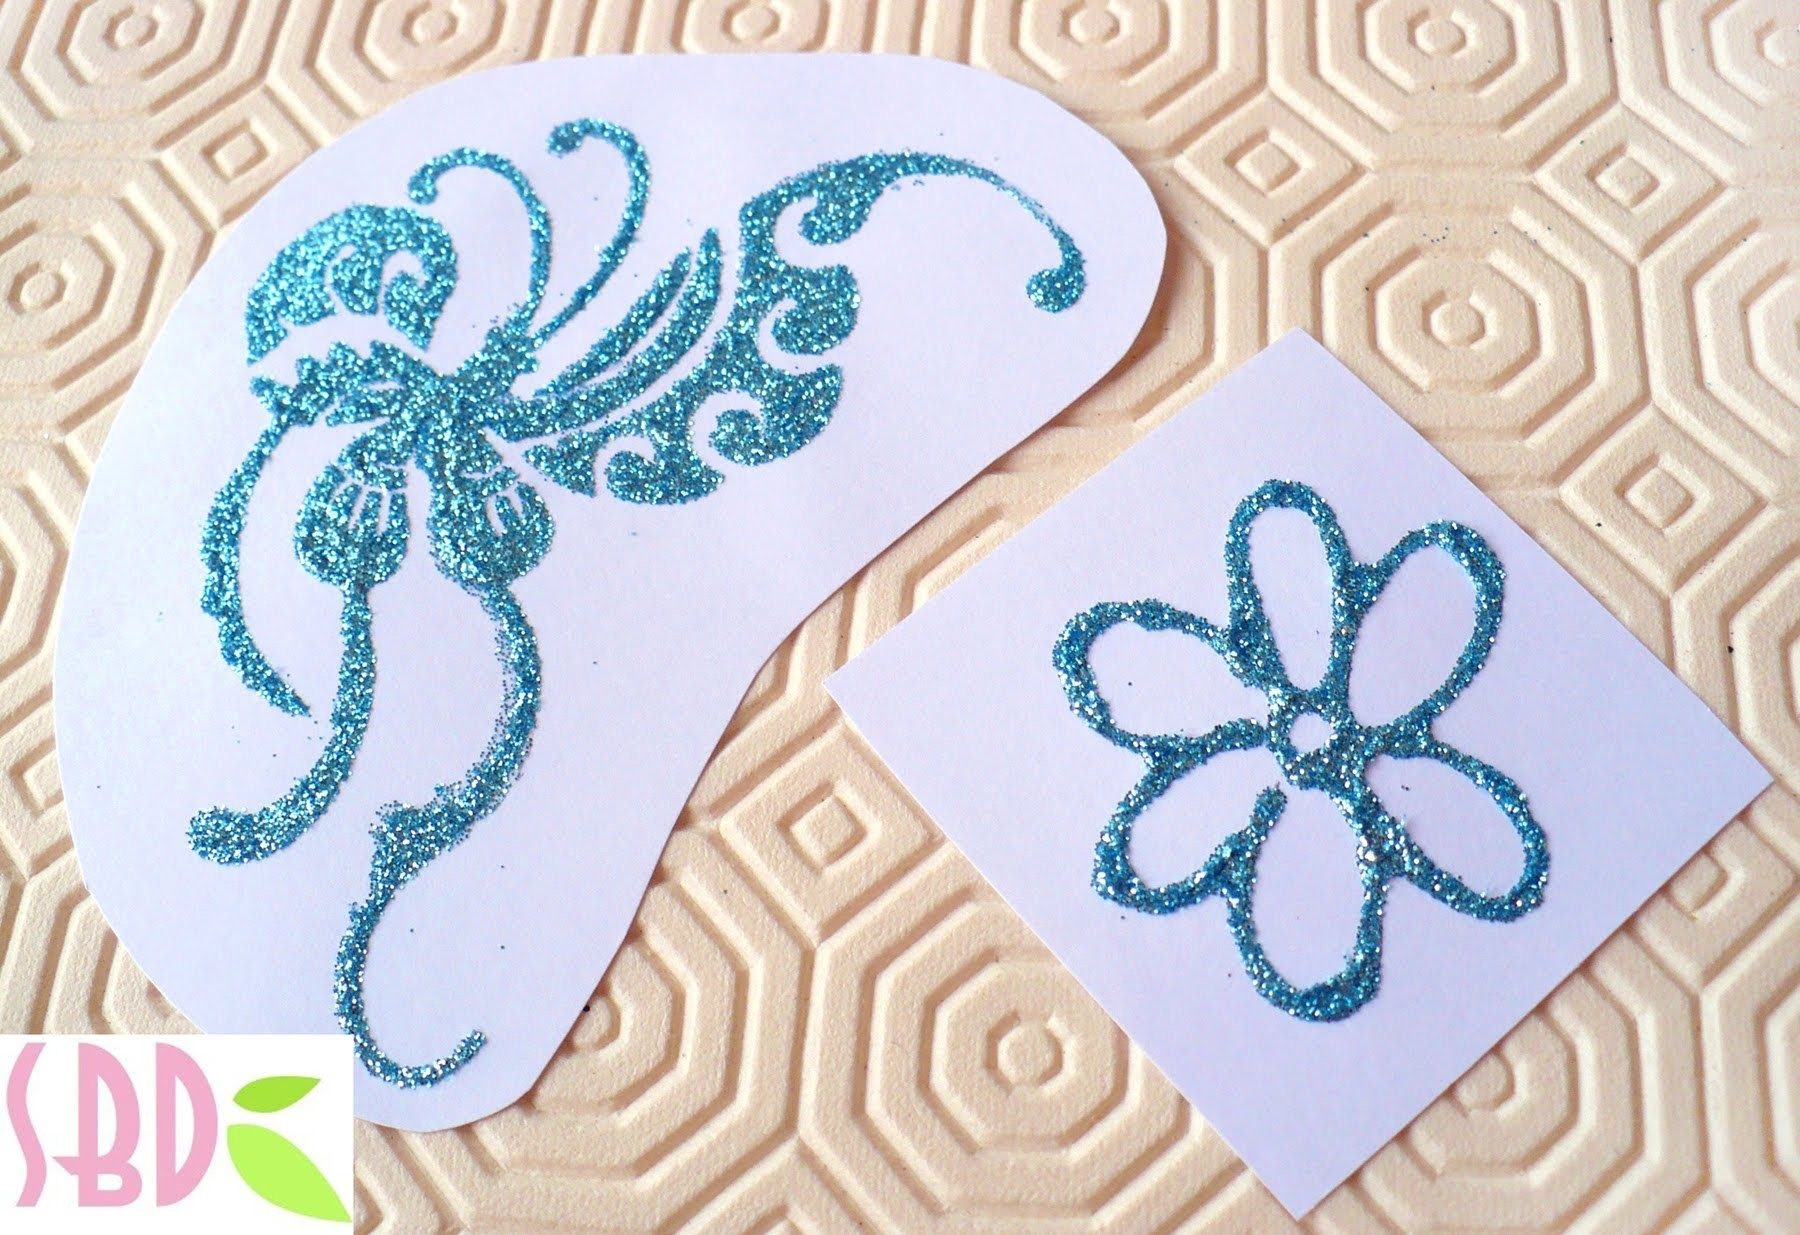 Tecnica Scrap: Embossing o rilievo Fai-da-te - DIY Embossing